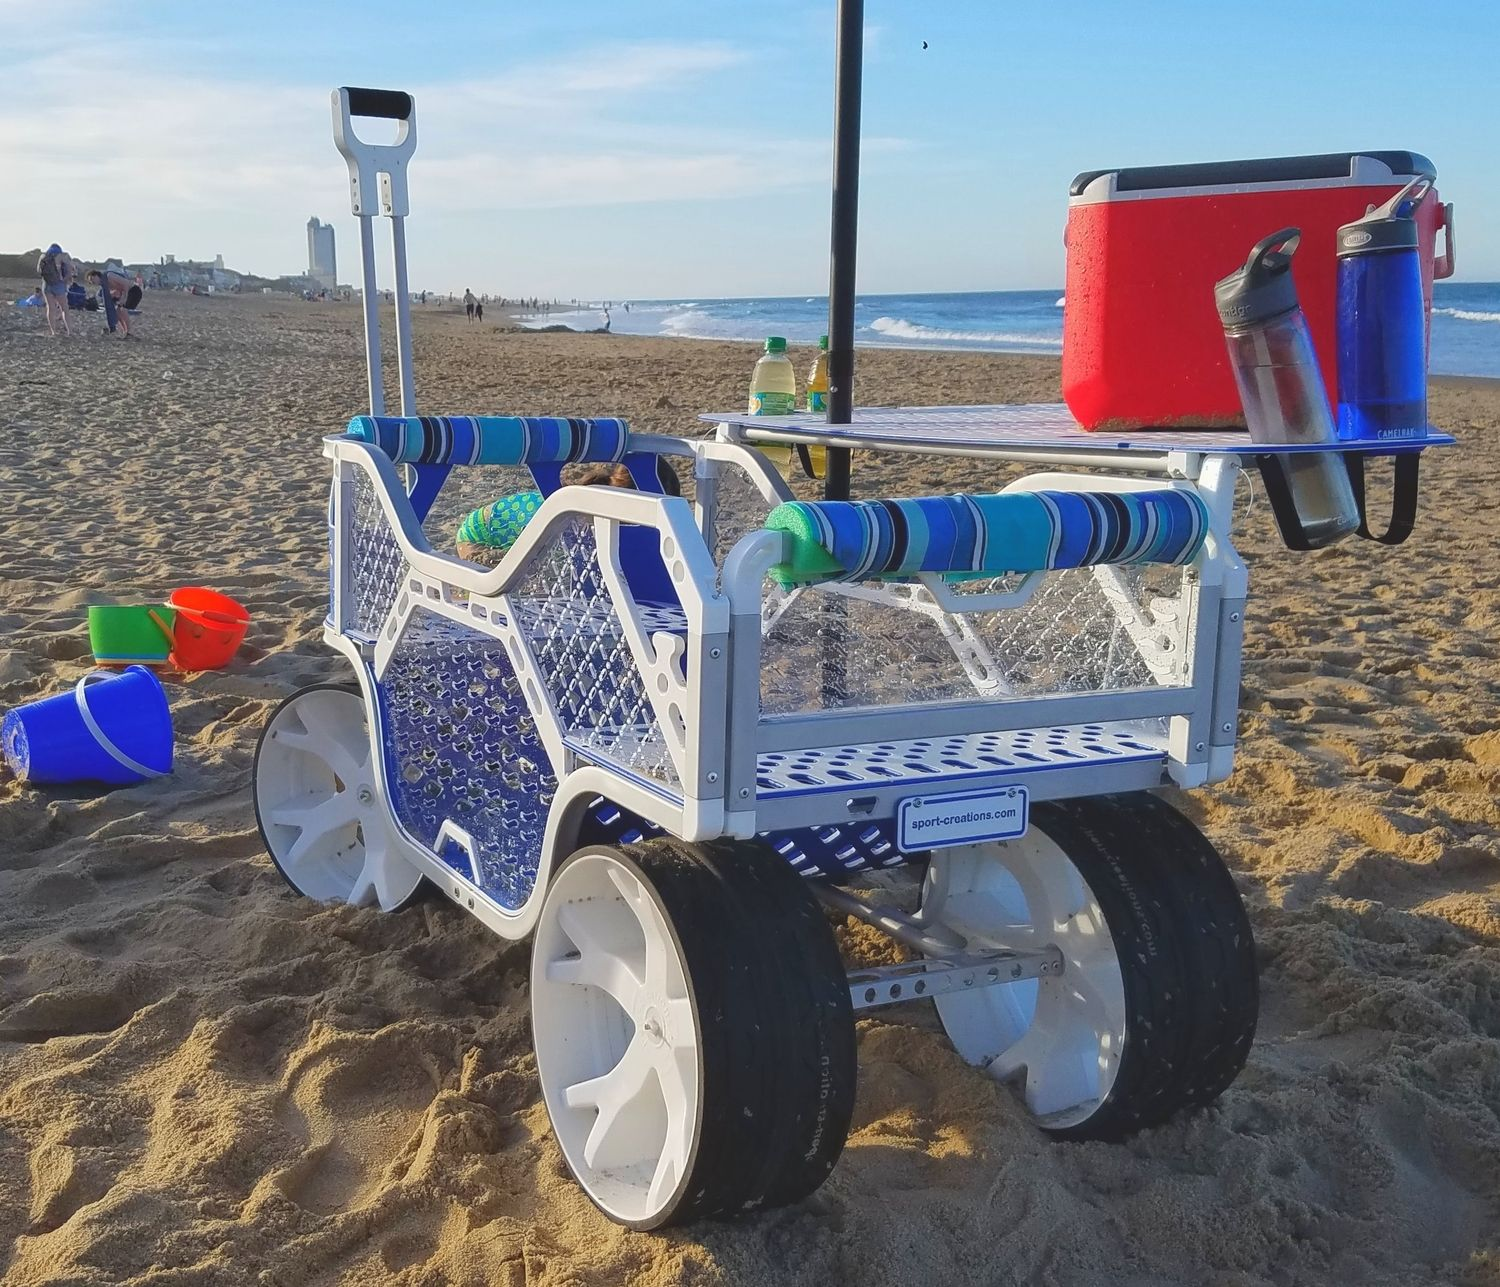 Beach chairs beach chair umbrella beach cart cabanas - Beach Cart With Wide Wheels To Cruise Over The Sand A Moveable Tailgate And Optional